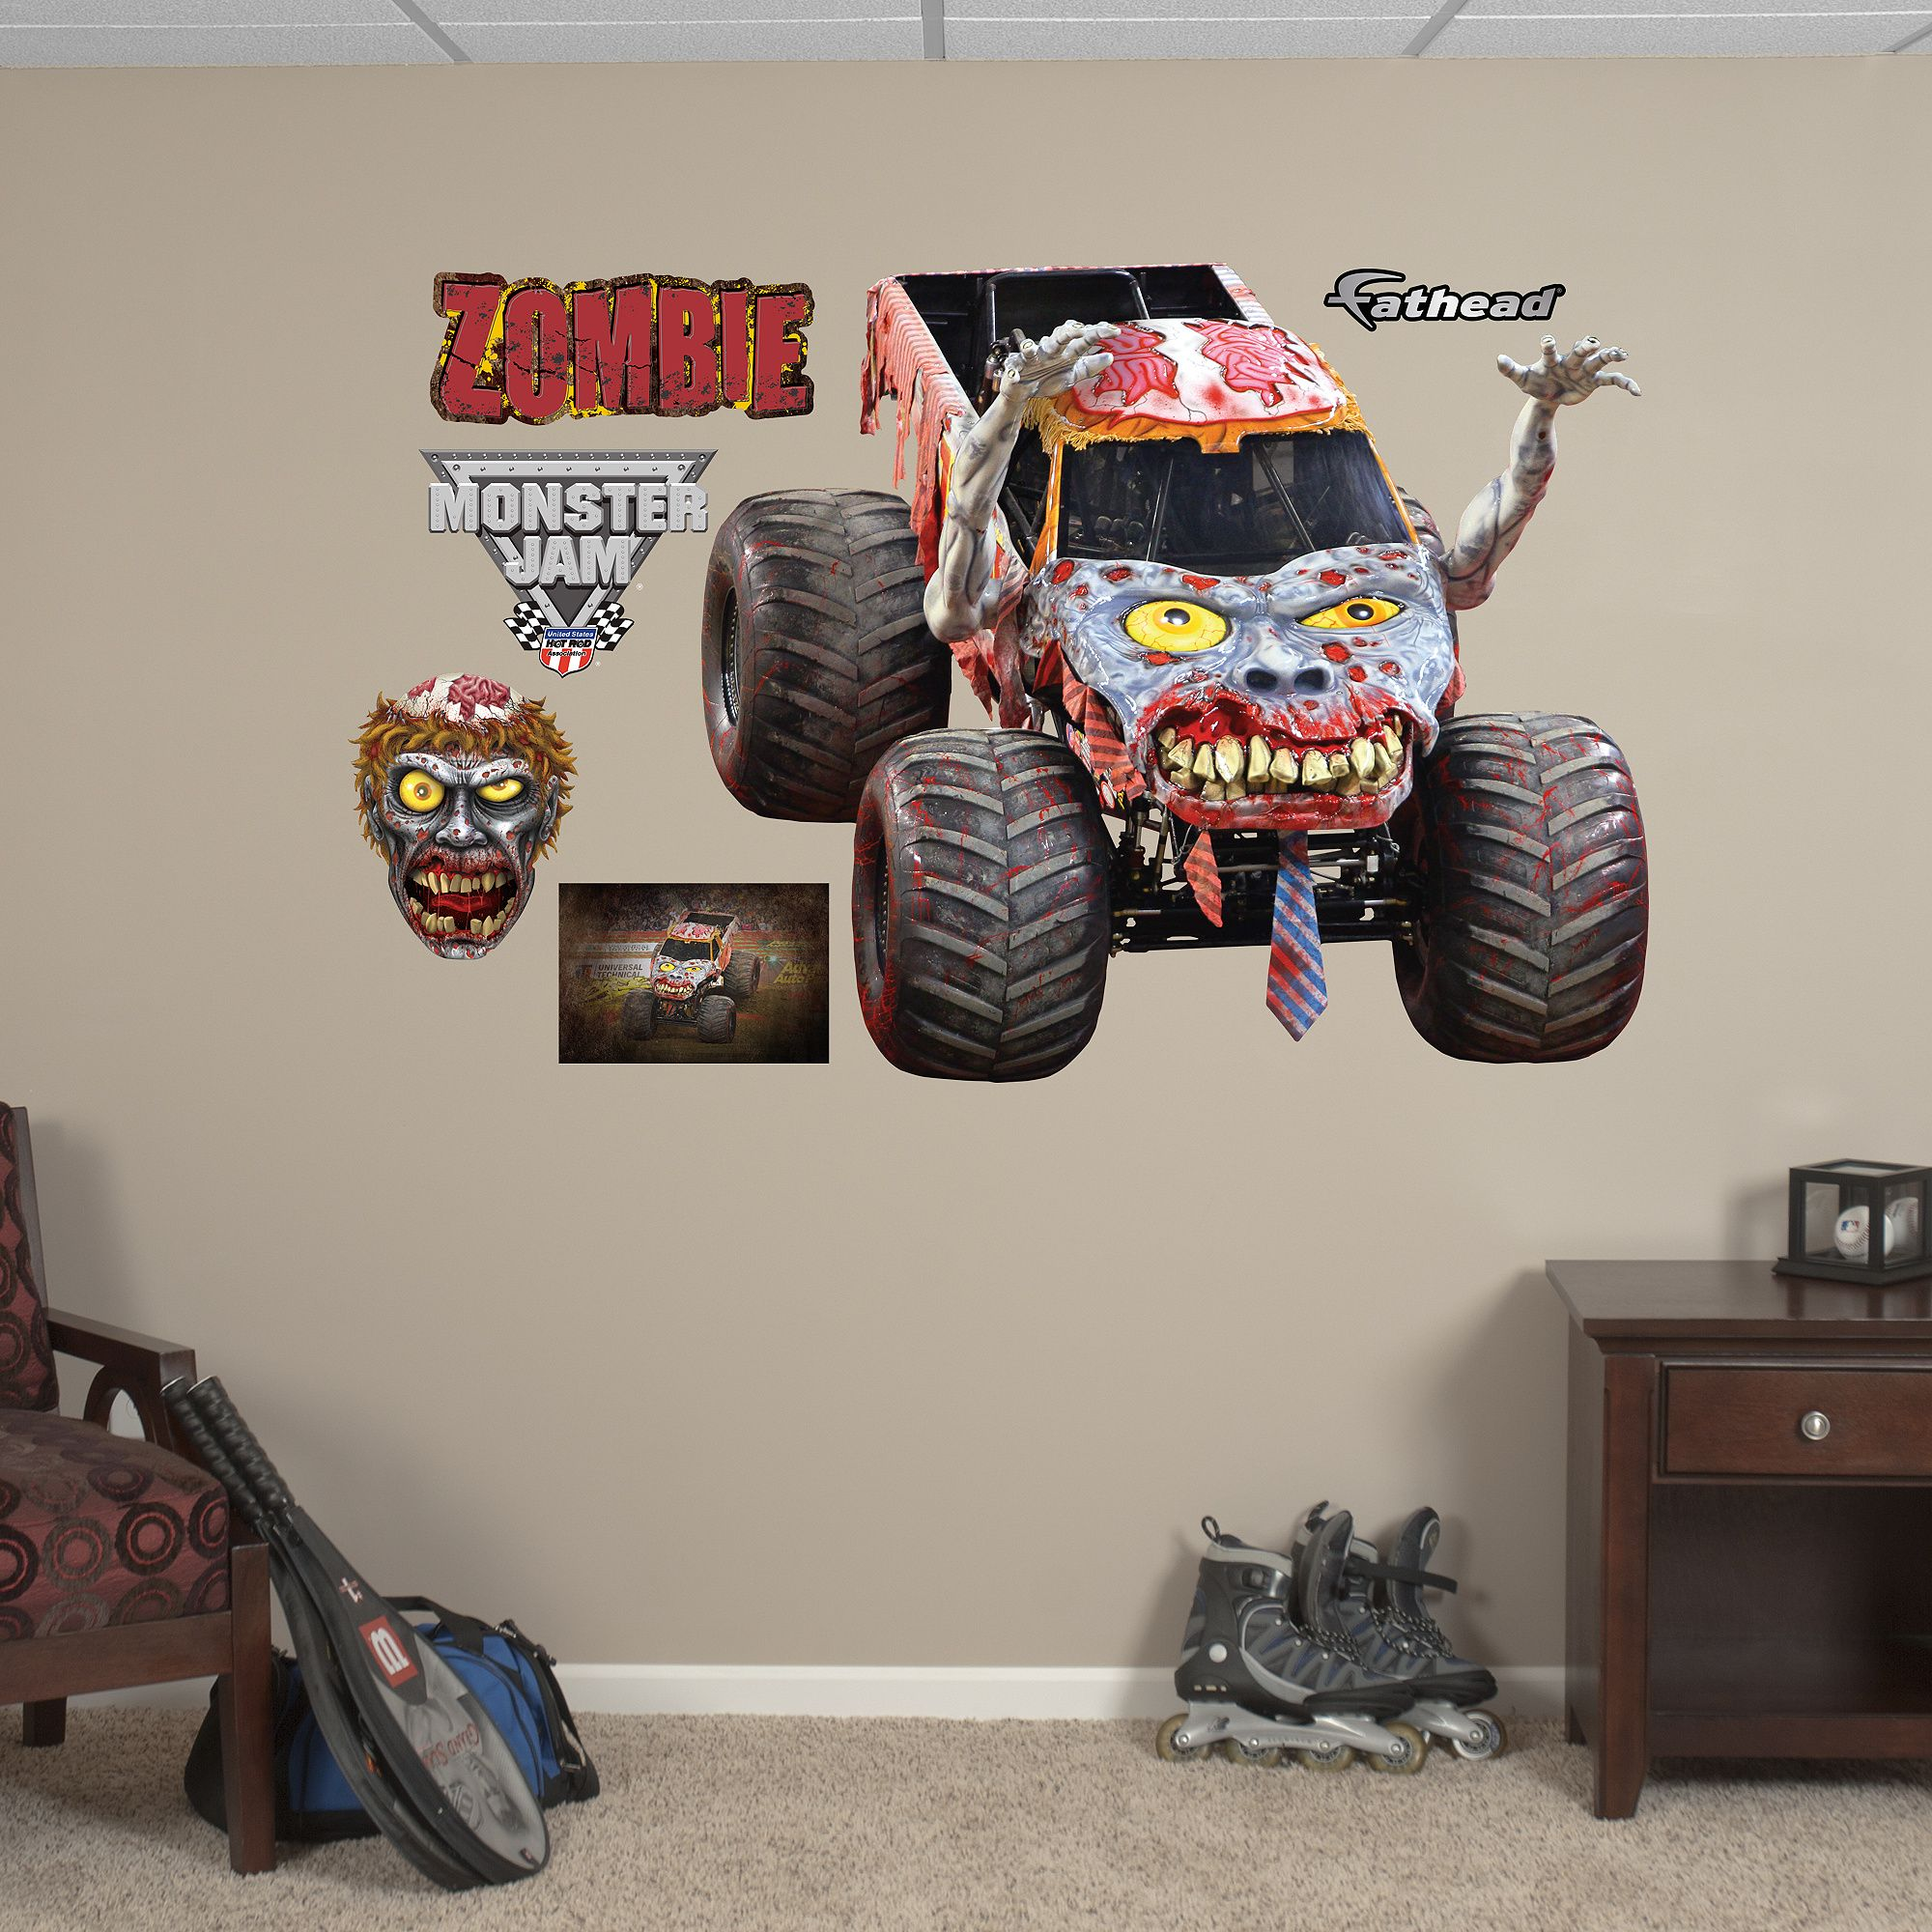 Zombie Huge Officially Licensed Monster Jam Removable Wall Decal With Images Monster Truck Decor Monster Truck Room Decor Wall Decals